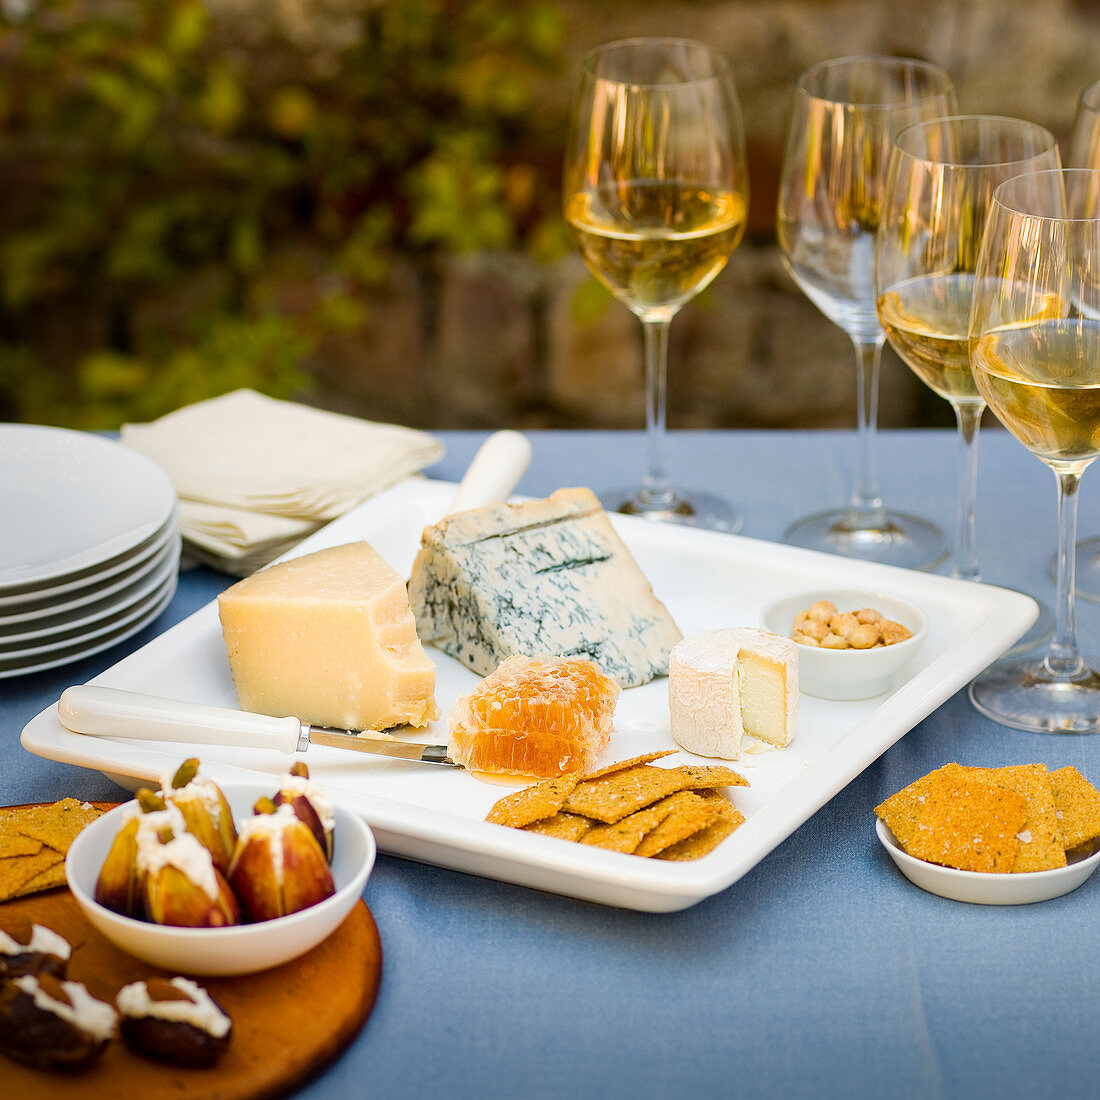 Cheese platter with honey, crackers and figs